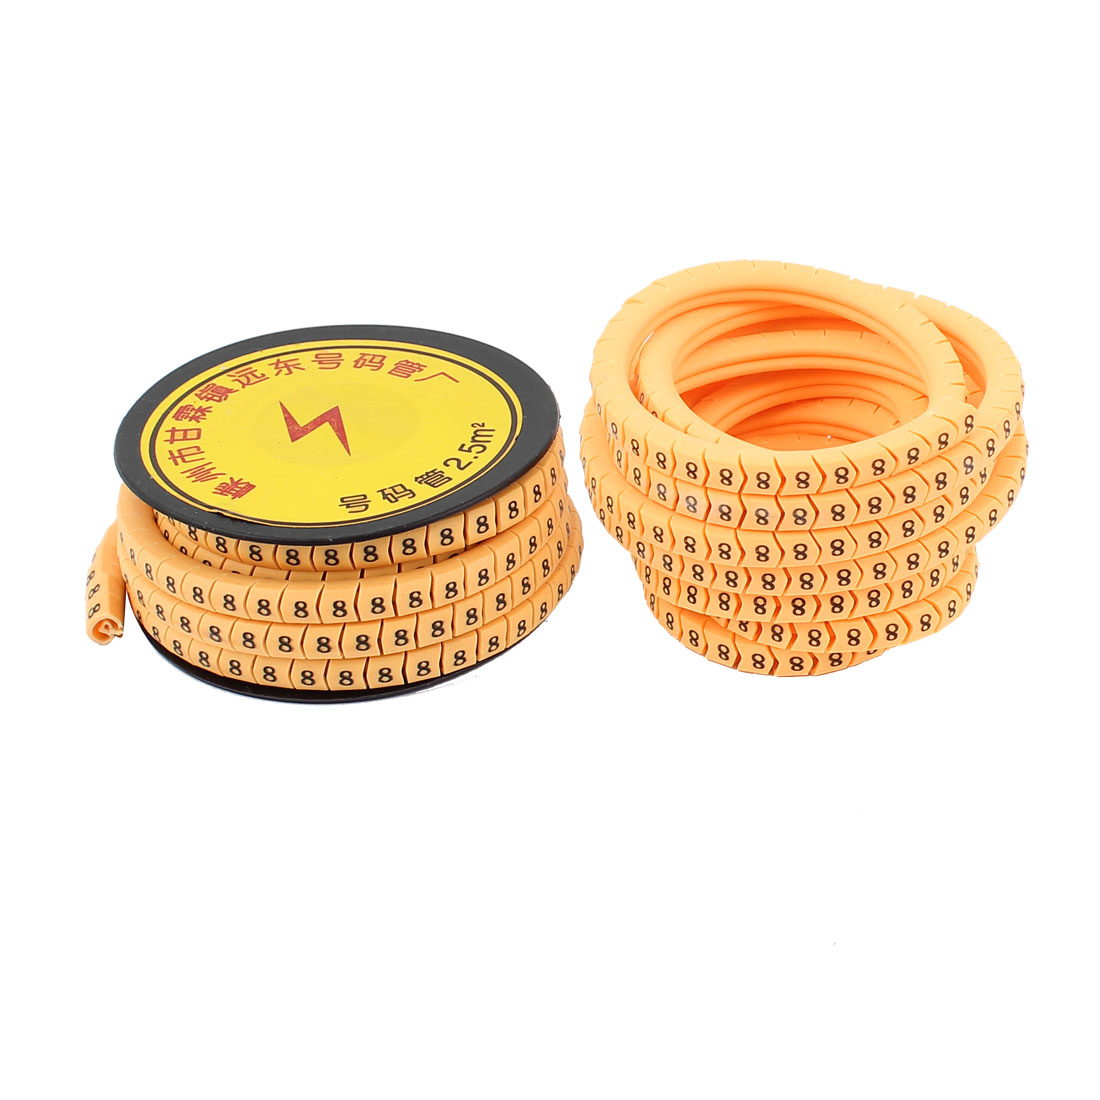 2pcs Flexible PVC Arabic Numerals 8 Printed Cable Marker Tag Label Reel Roll for 2.5mm2 Wire